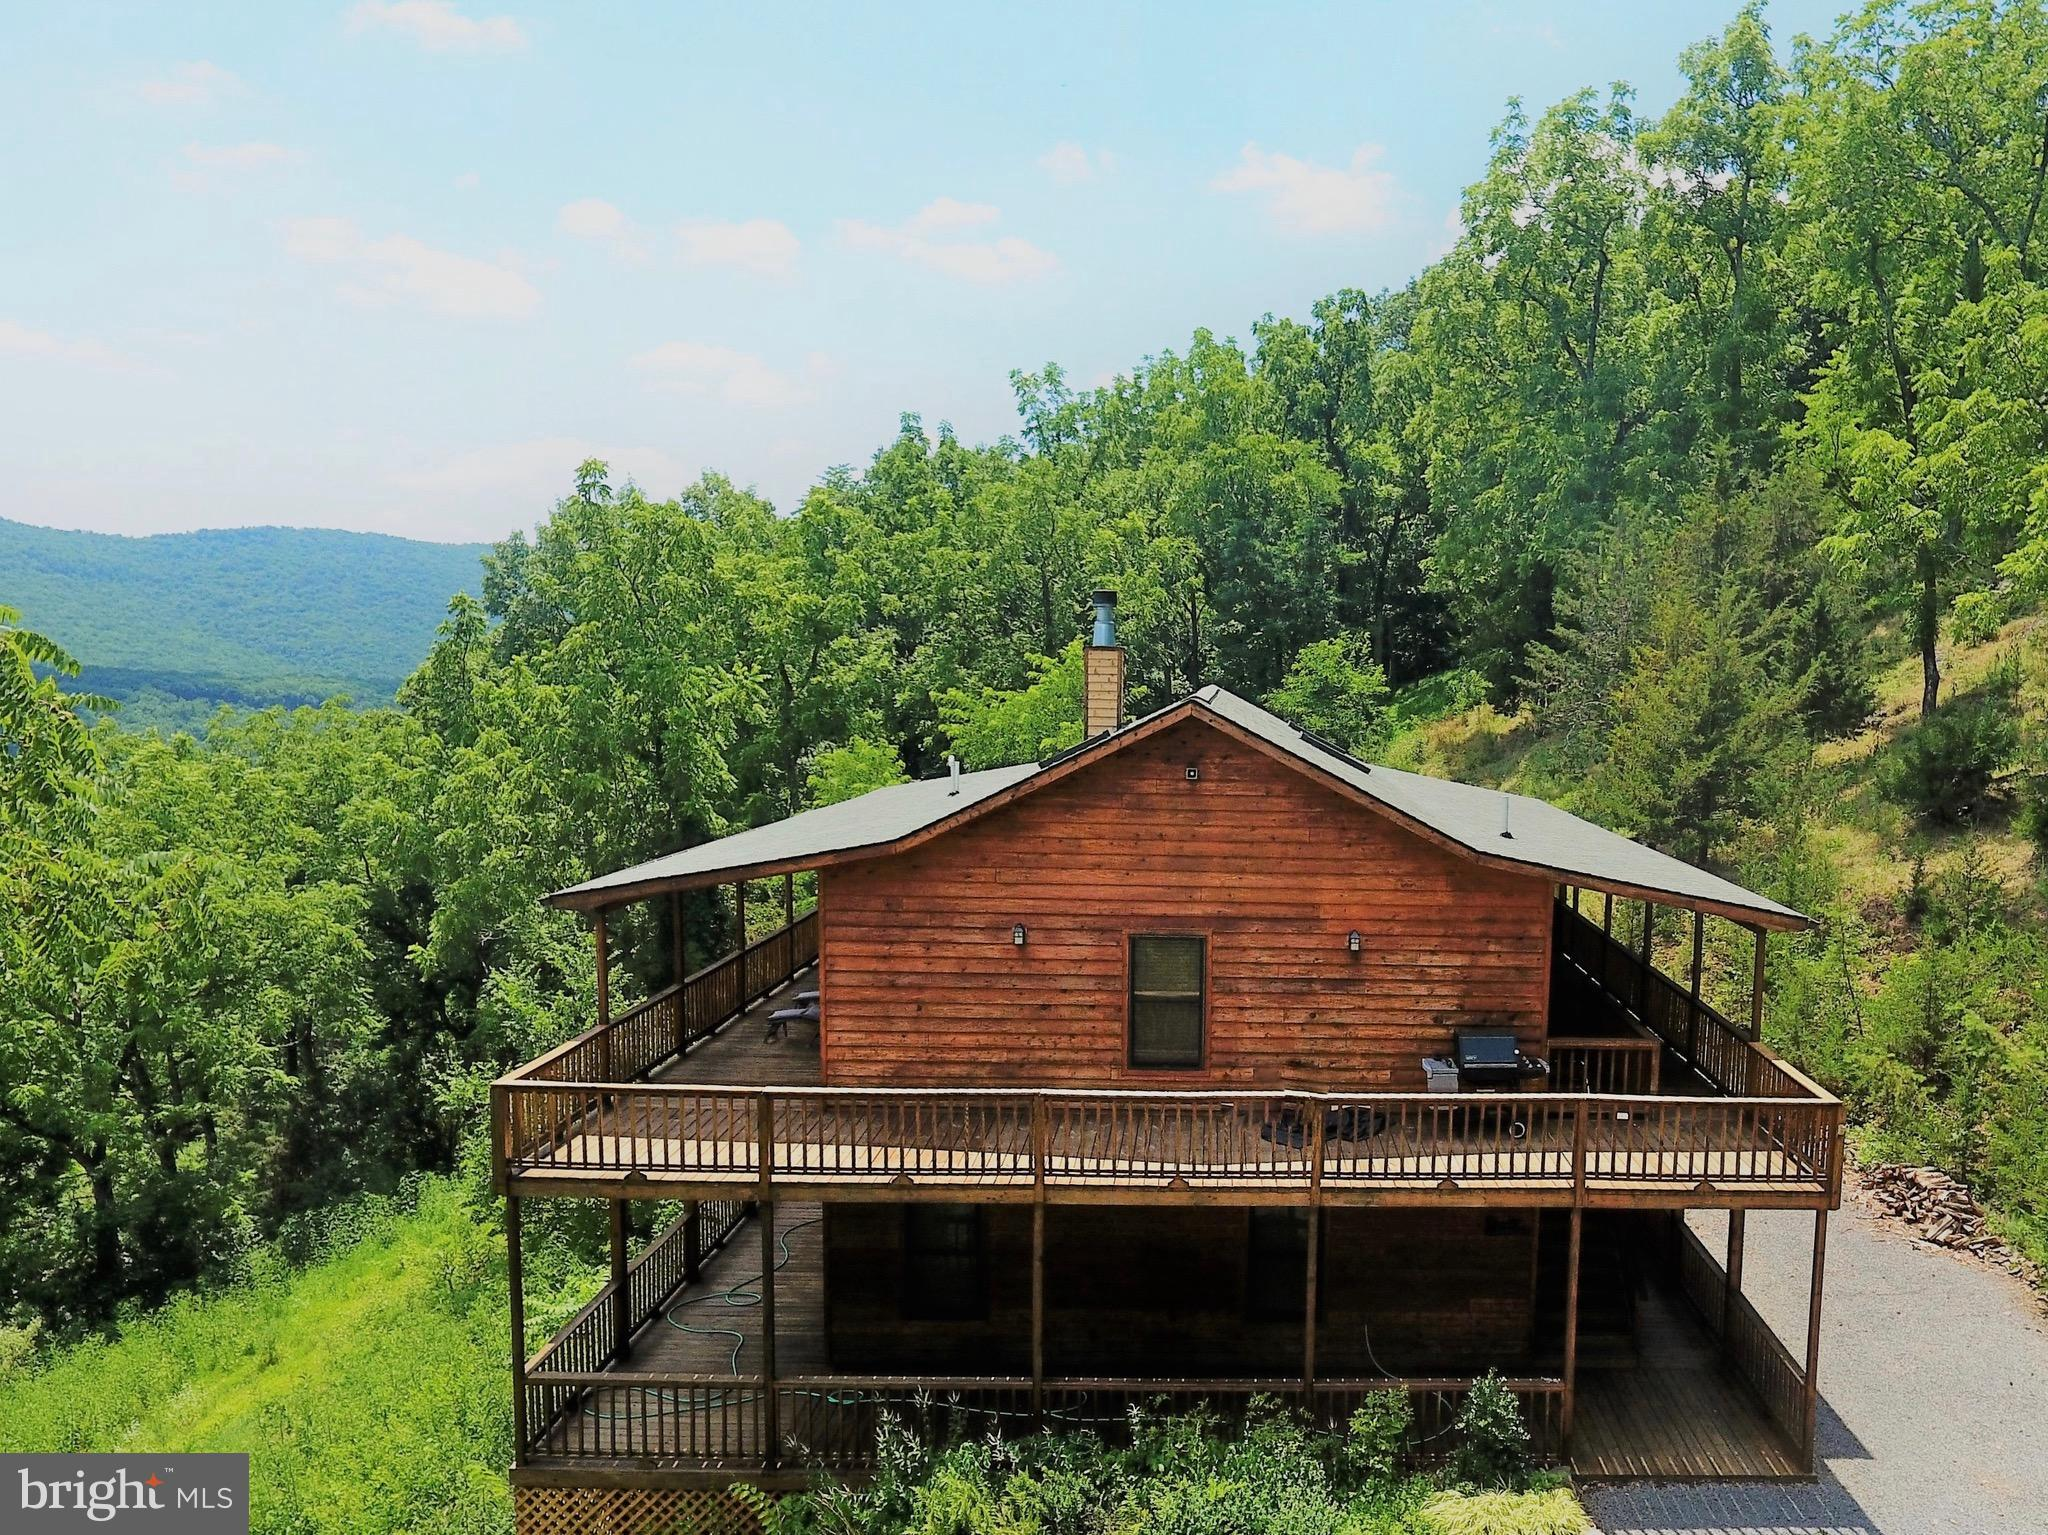 969 TOMS KNOB APPROACH, LOST RIVER, WV 26810